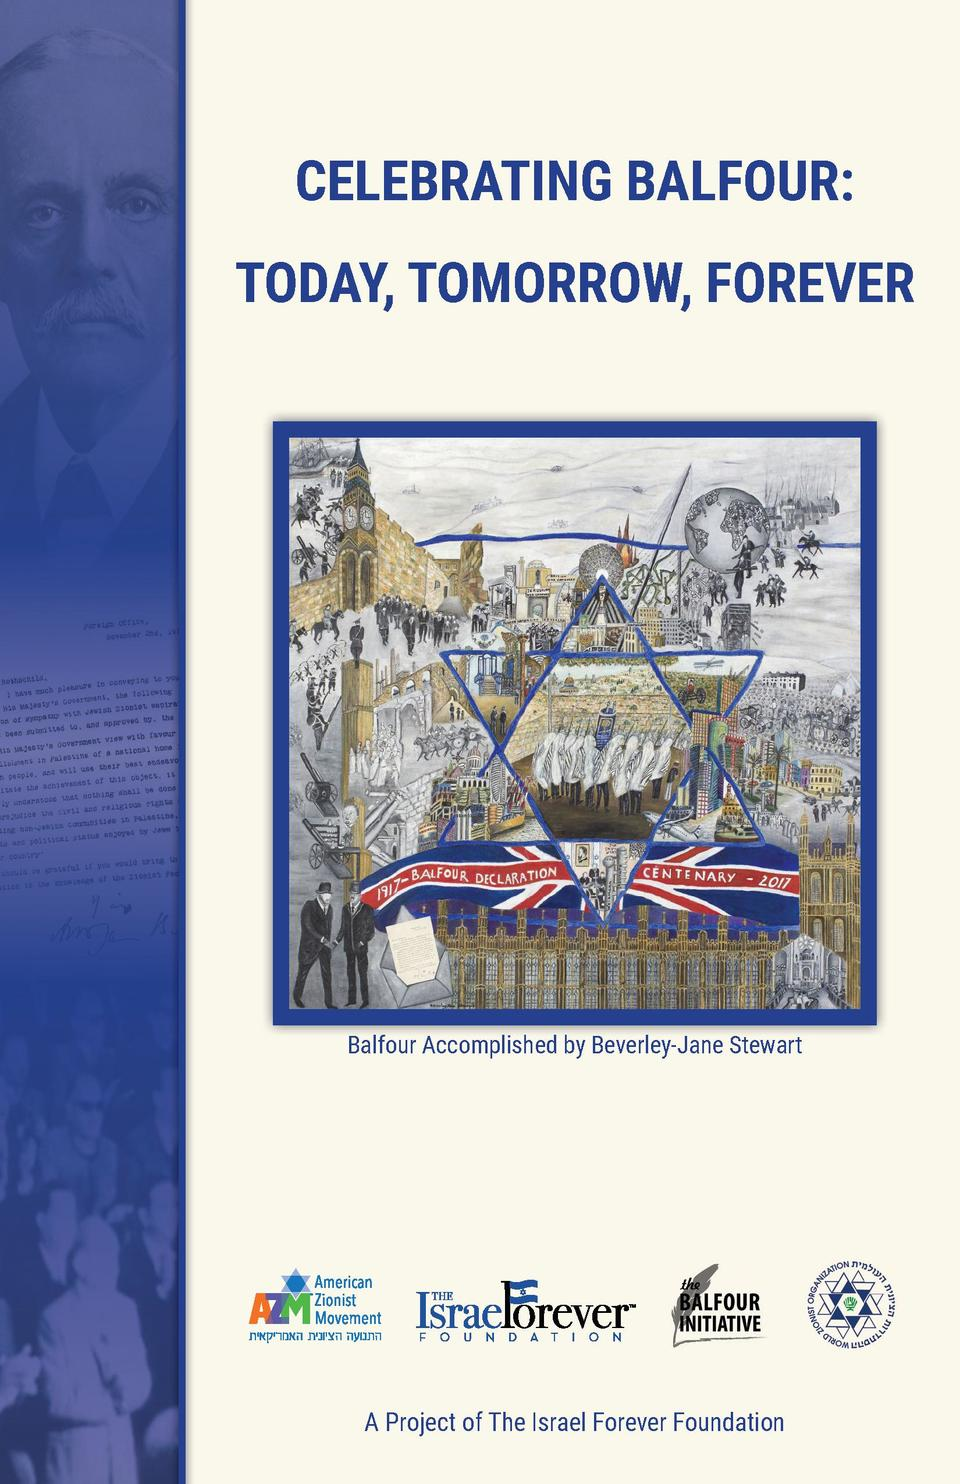 CELEBRATING BALFOUR  TODAY, TOMORROW, FOREVER  Balfour Accomplished by Beverley-Jane Stewart  A Project of The Israel Fore...